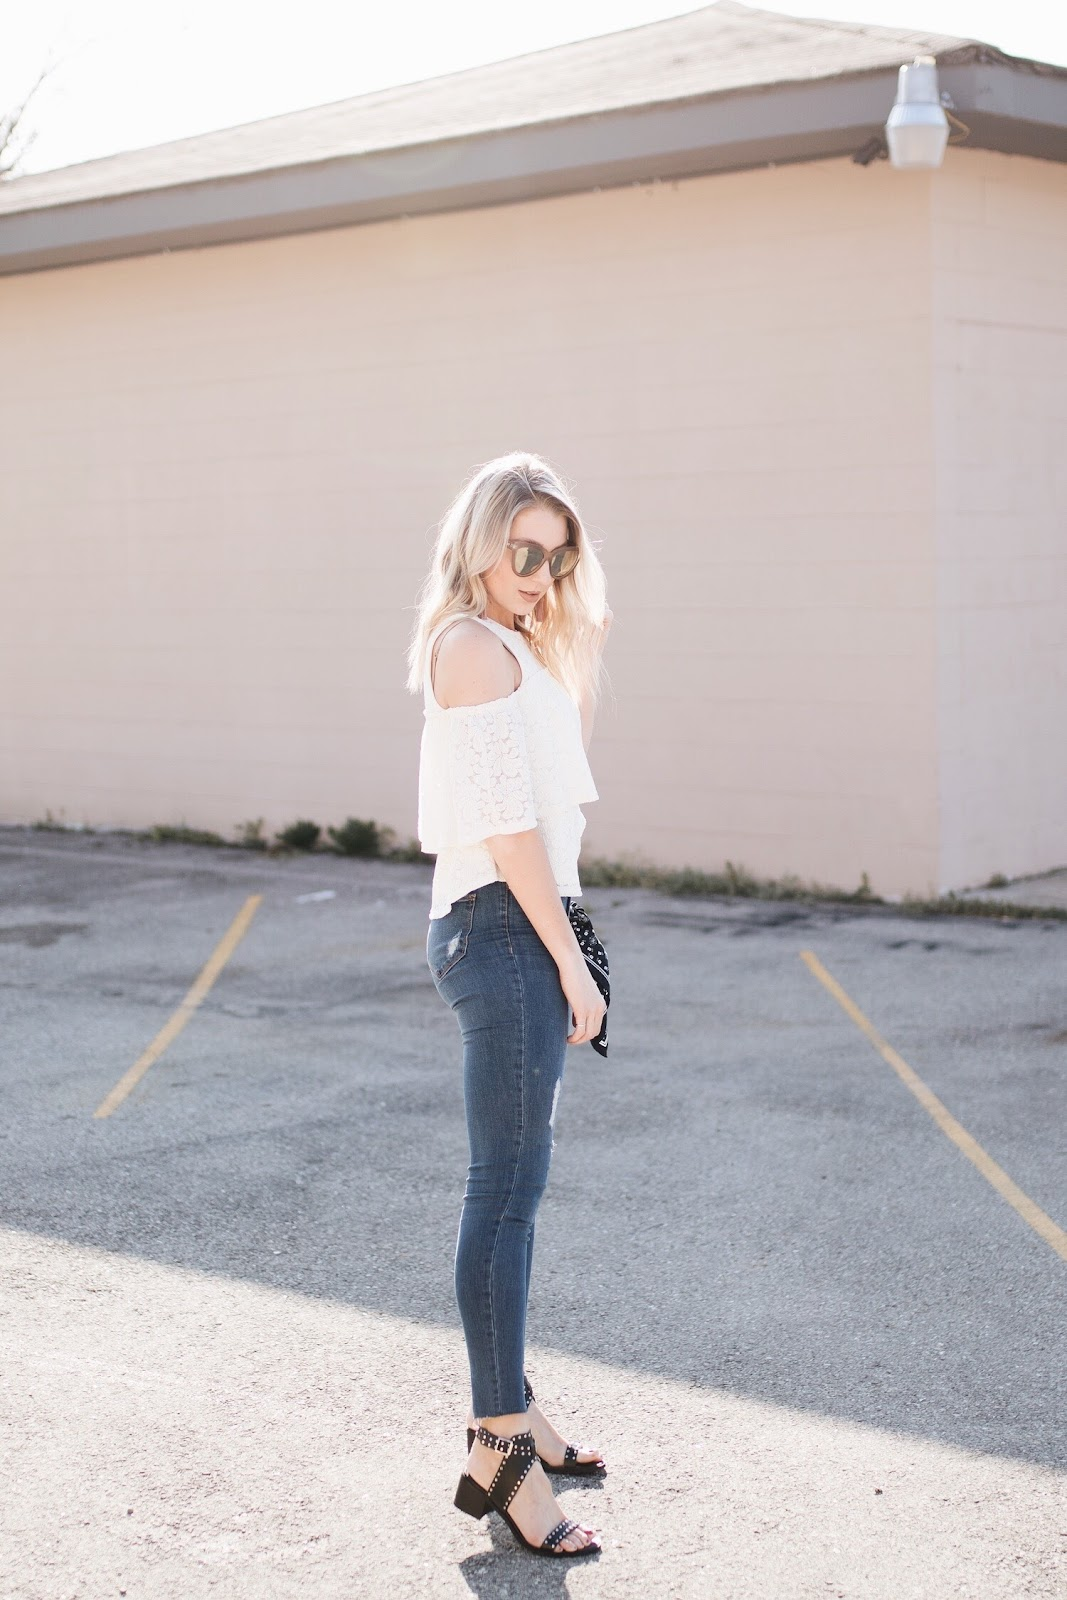 lace top with skinny jeans for spring